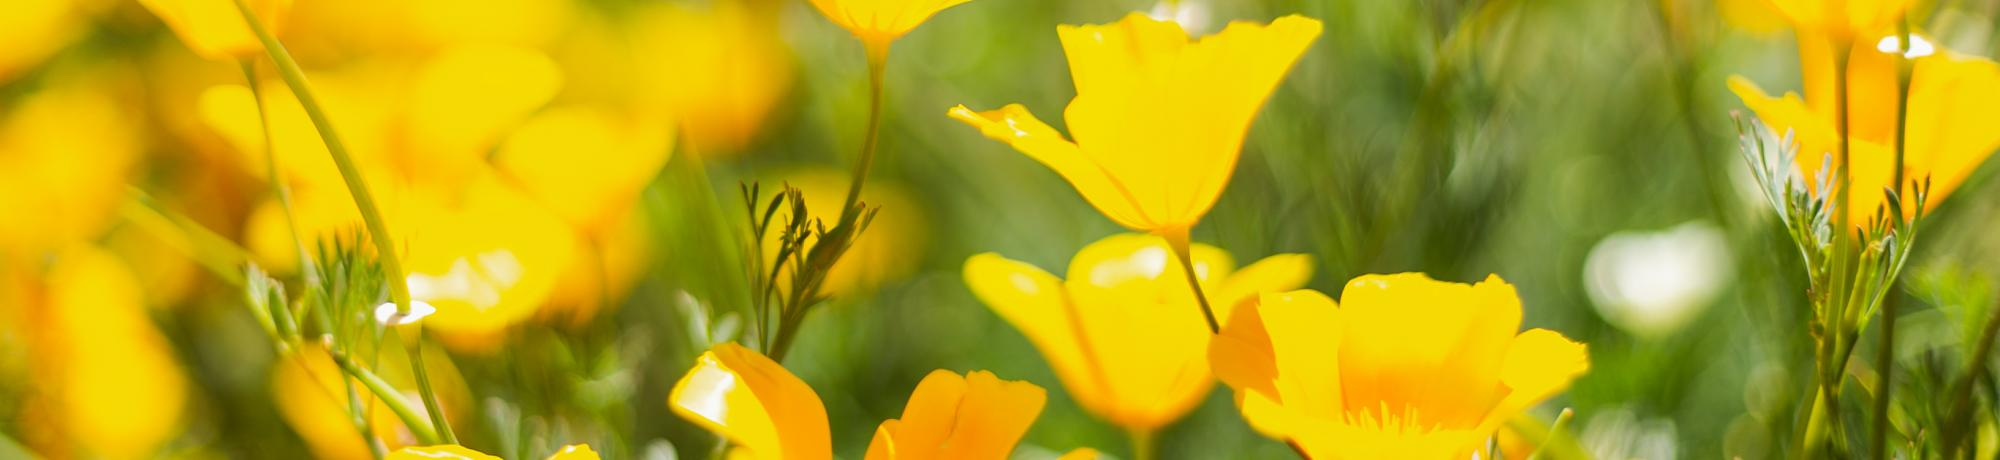 Image of California poppies in bloom in the UC Davis Arboretum and Public Garden.